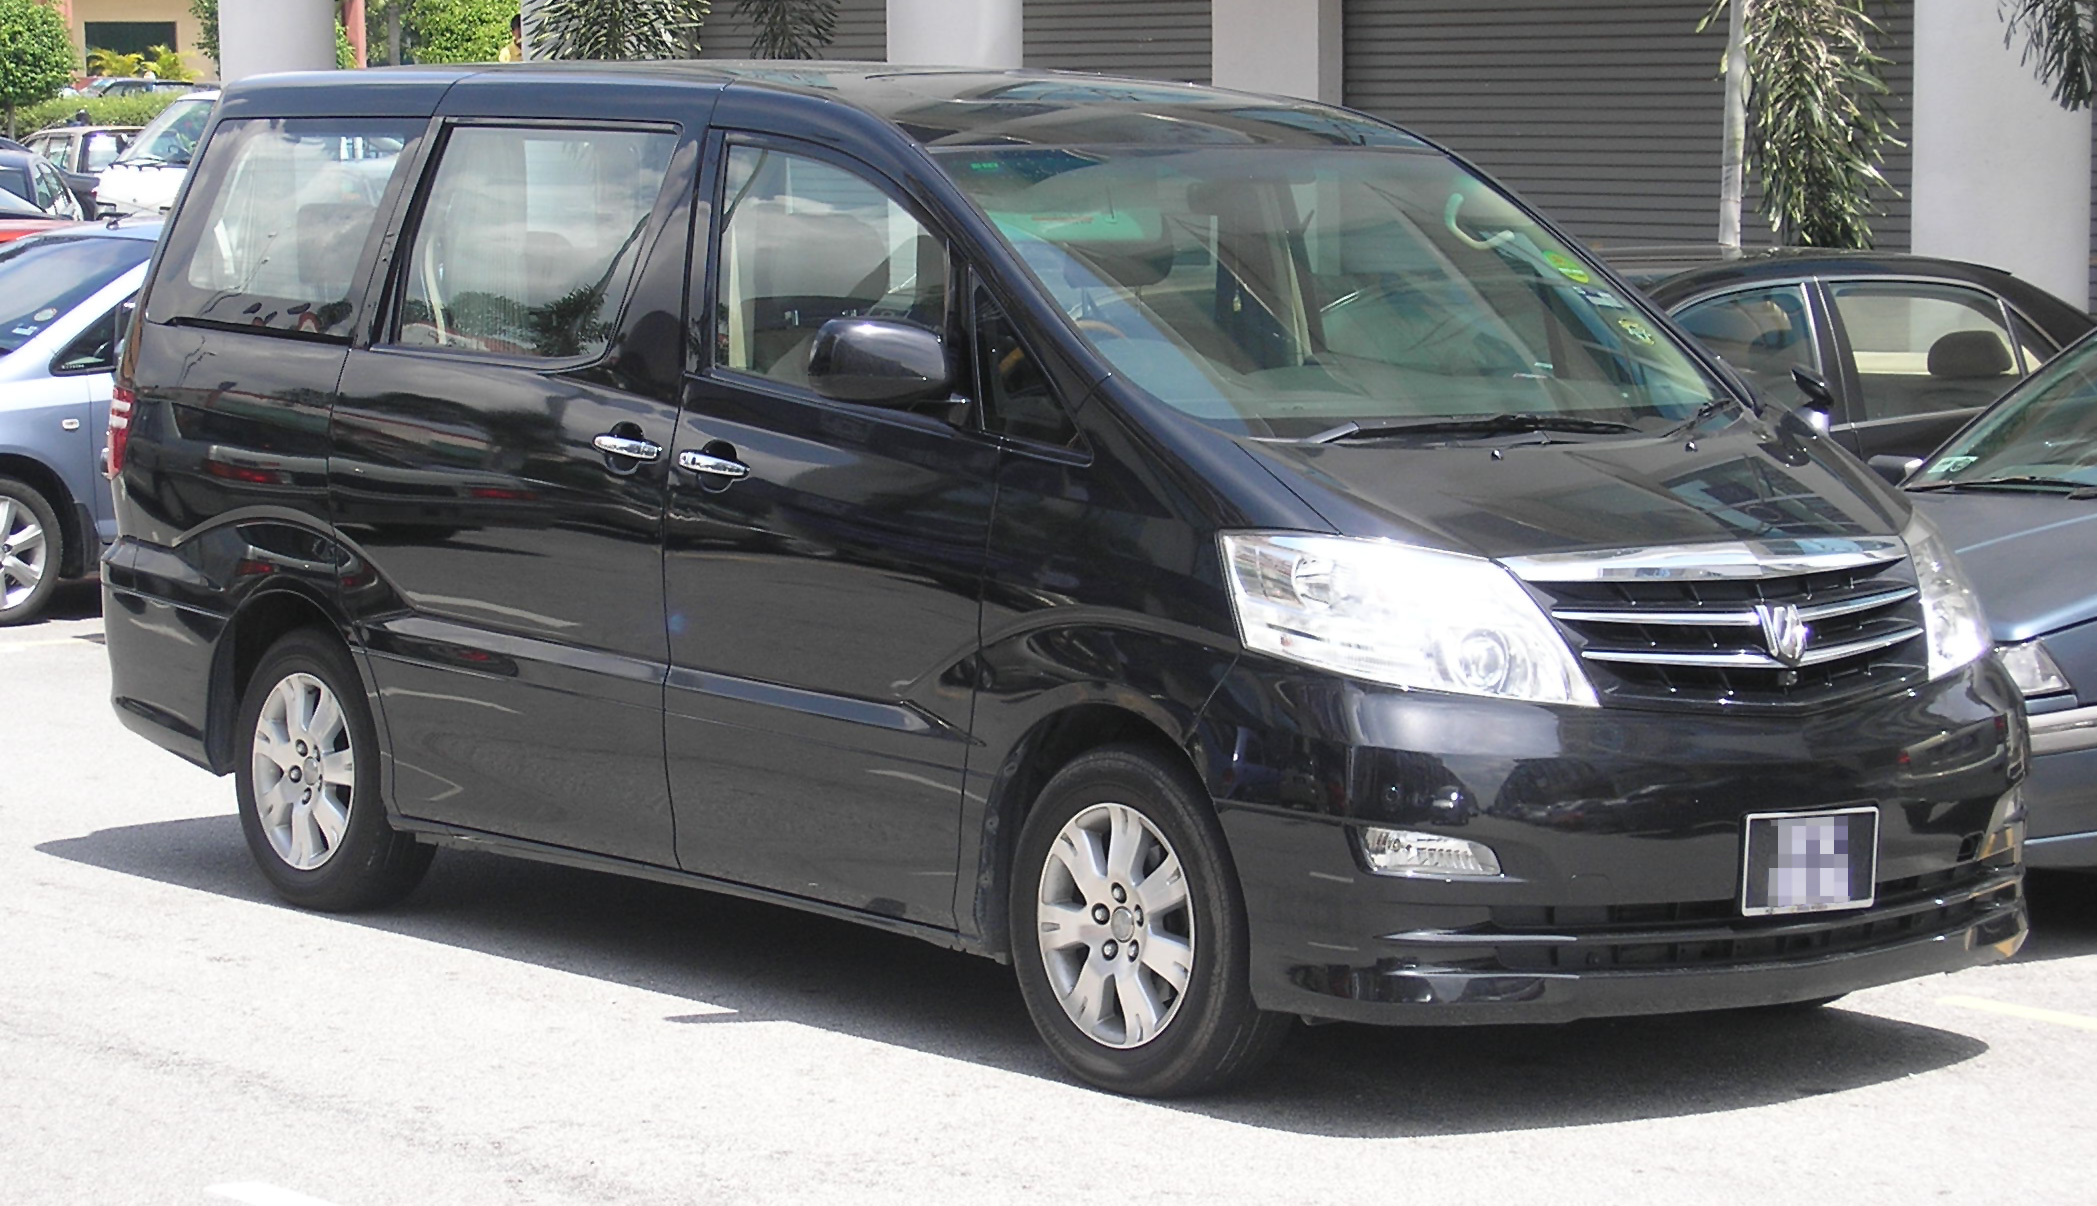 File:Toyota Alphard (first generation) (front, black), Serdang.jpg - Wikimedia Commons